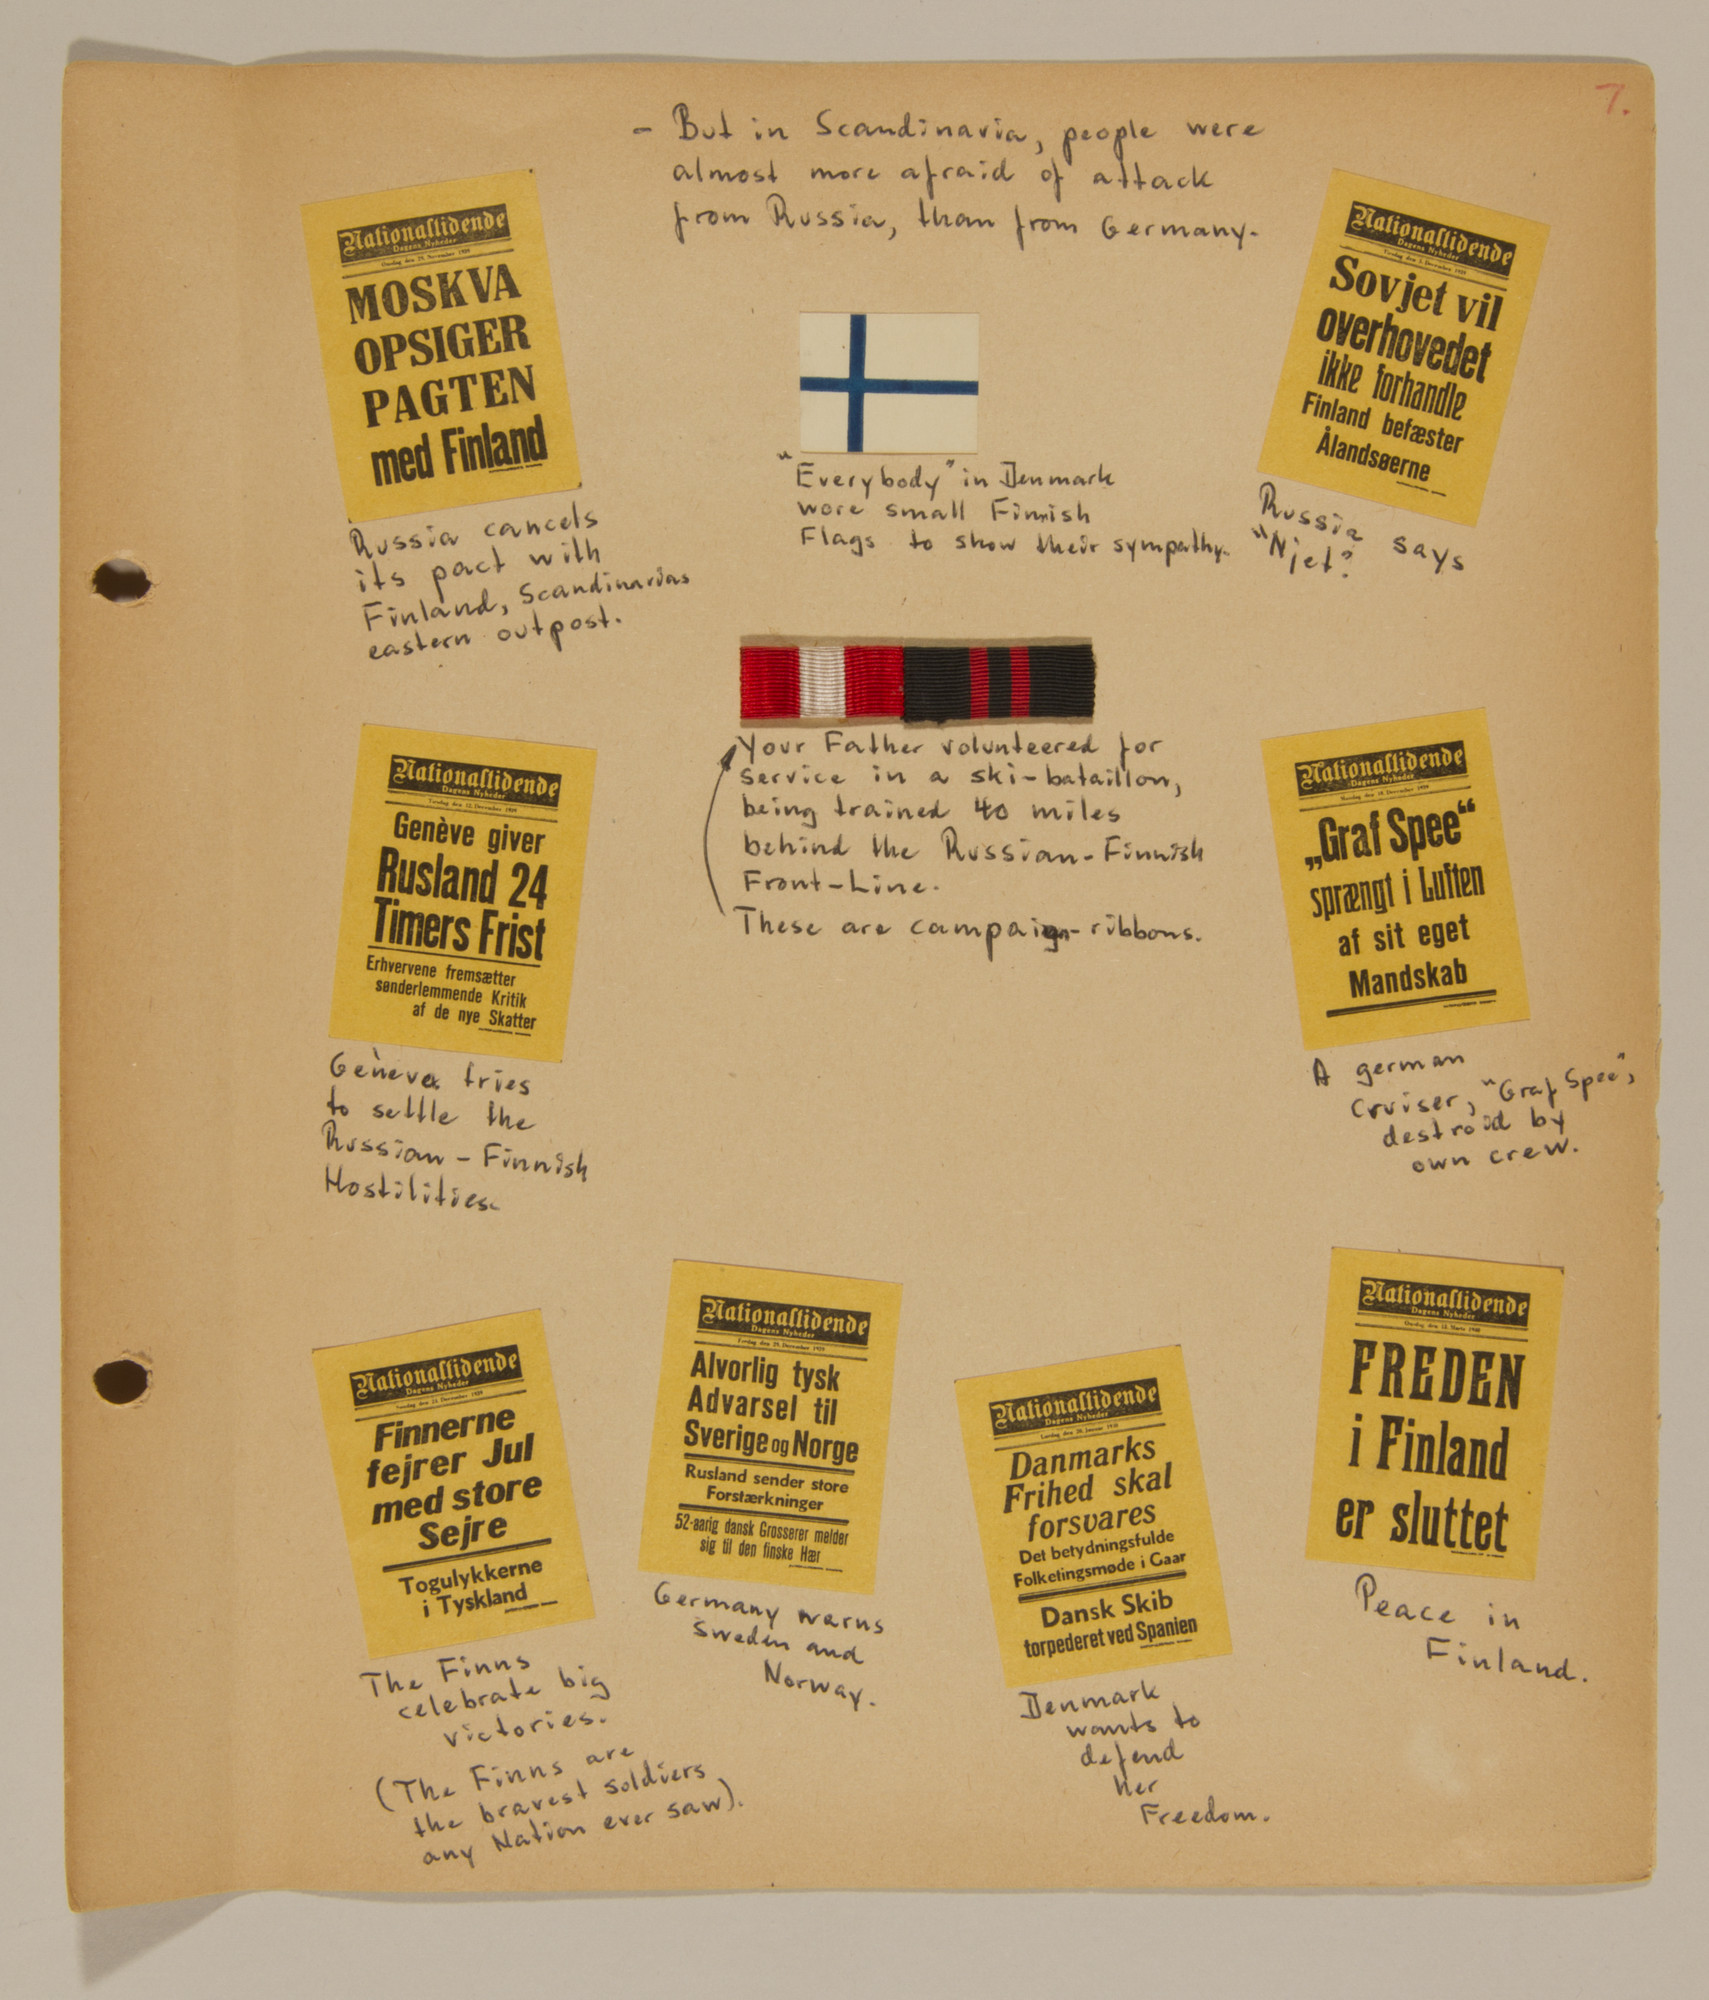 Page from volume one of a set of scrapbooks compiled by Bjorn Sibbern, a Danish policeman and resistance member, documenting the German occupation of Denmark.  This page has press headlines from the summer and fall of 1939 and talks about the Scandinavian fear of attack from Russia.